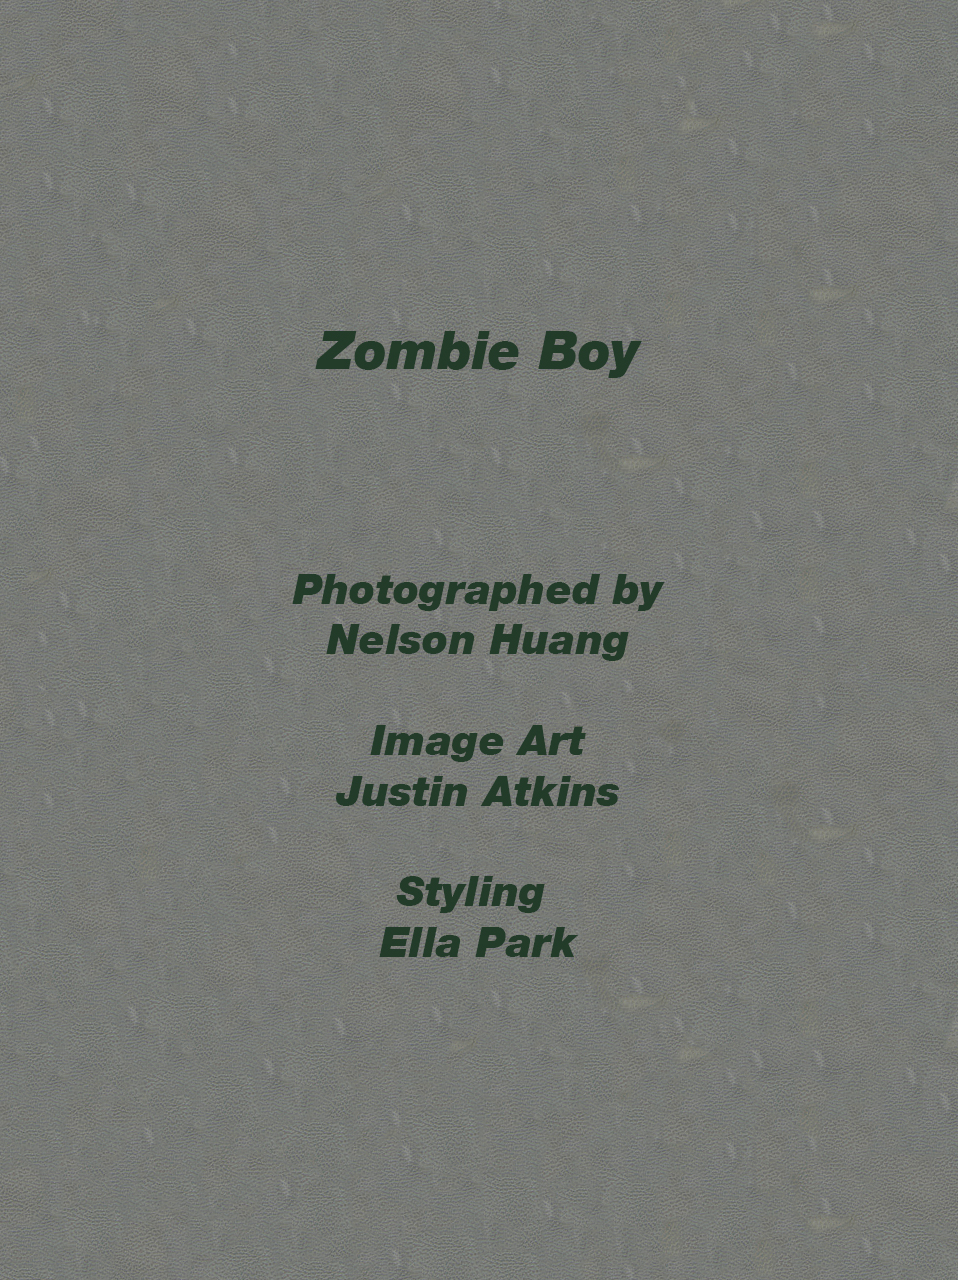 Zombie Boy by photographer Nelson Huang artist Justin Atkins.jpg